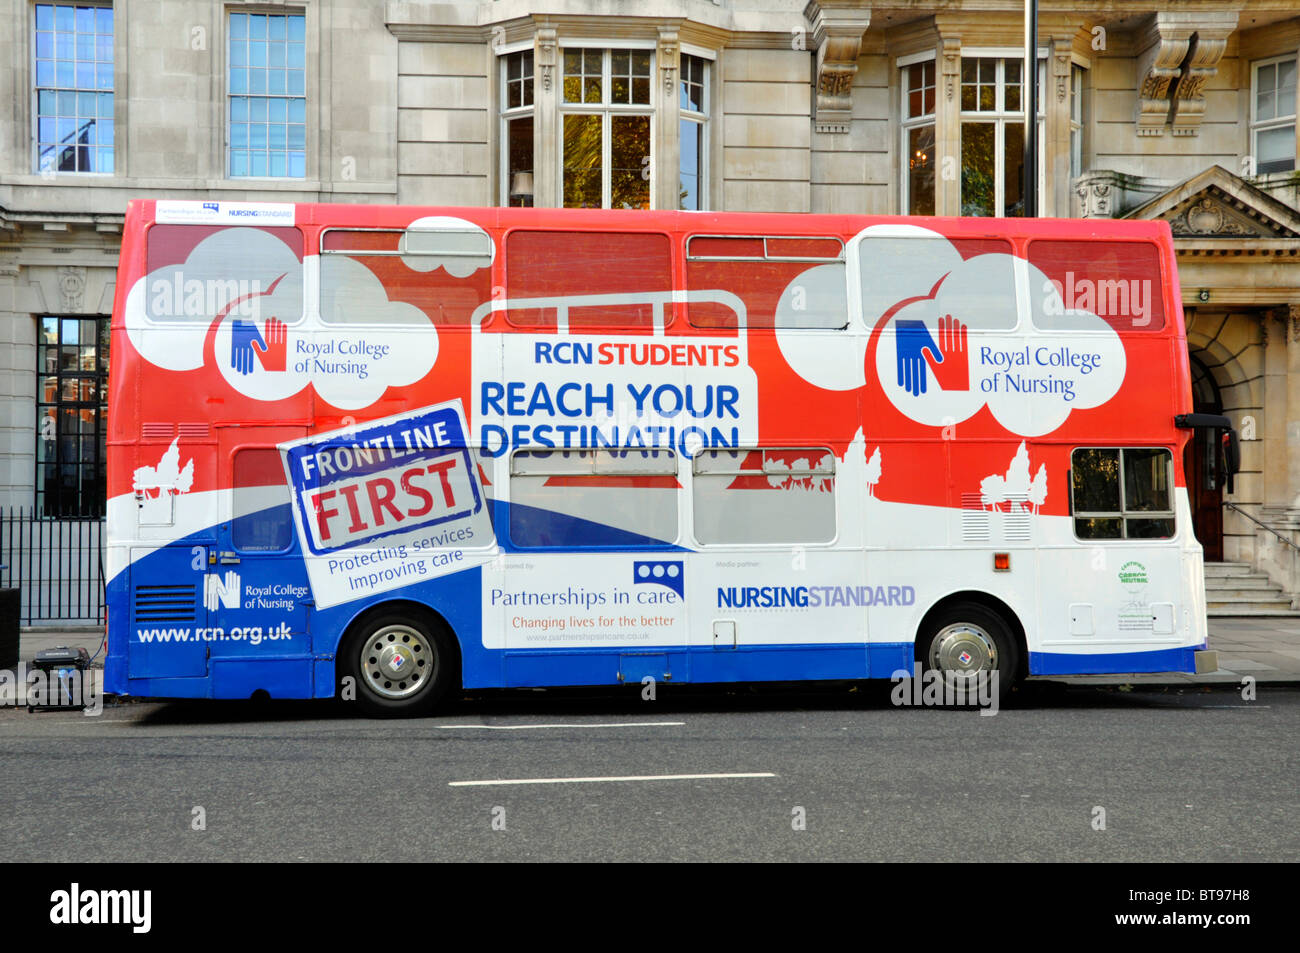 Bus advertising graphic design advert on side view of double decker bus for nurse job recruitment by the Royal College - Stock Image